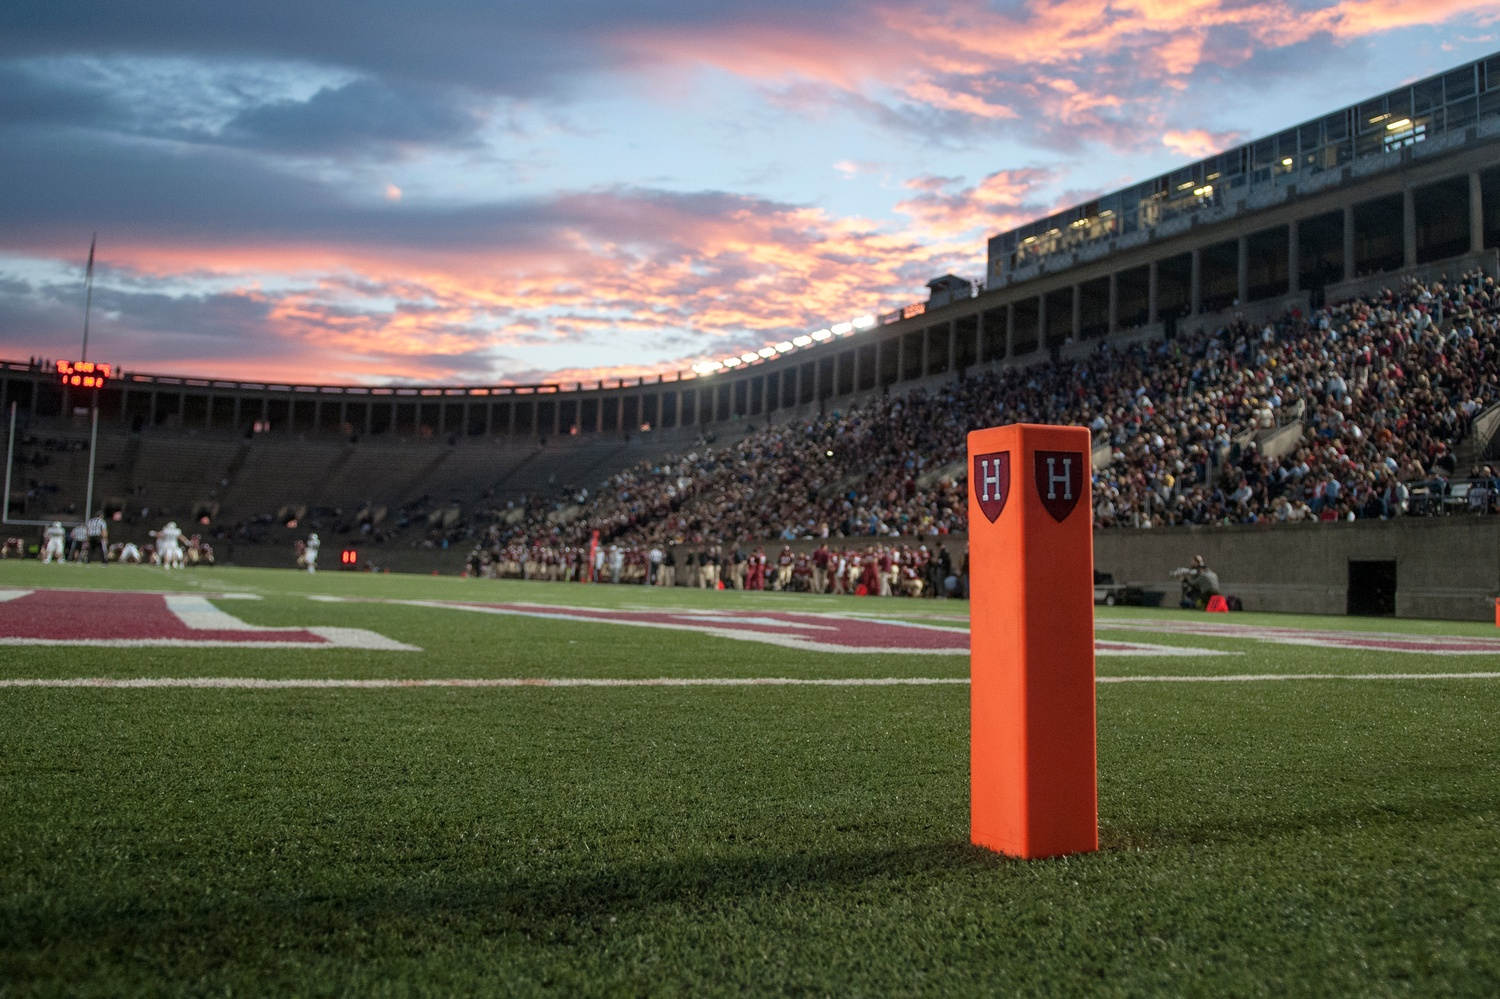 Harvard's football field. The school's athletic department recently debuted a host of new trainings and initiatives for student-athletes.